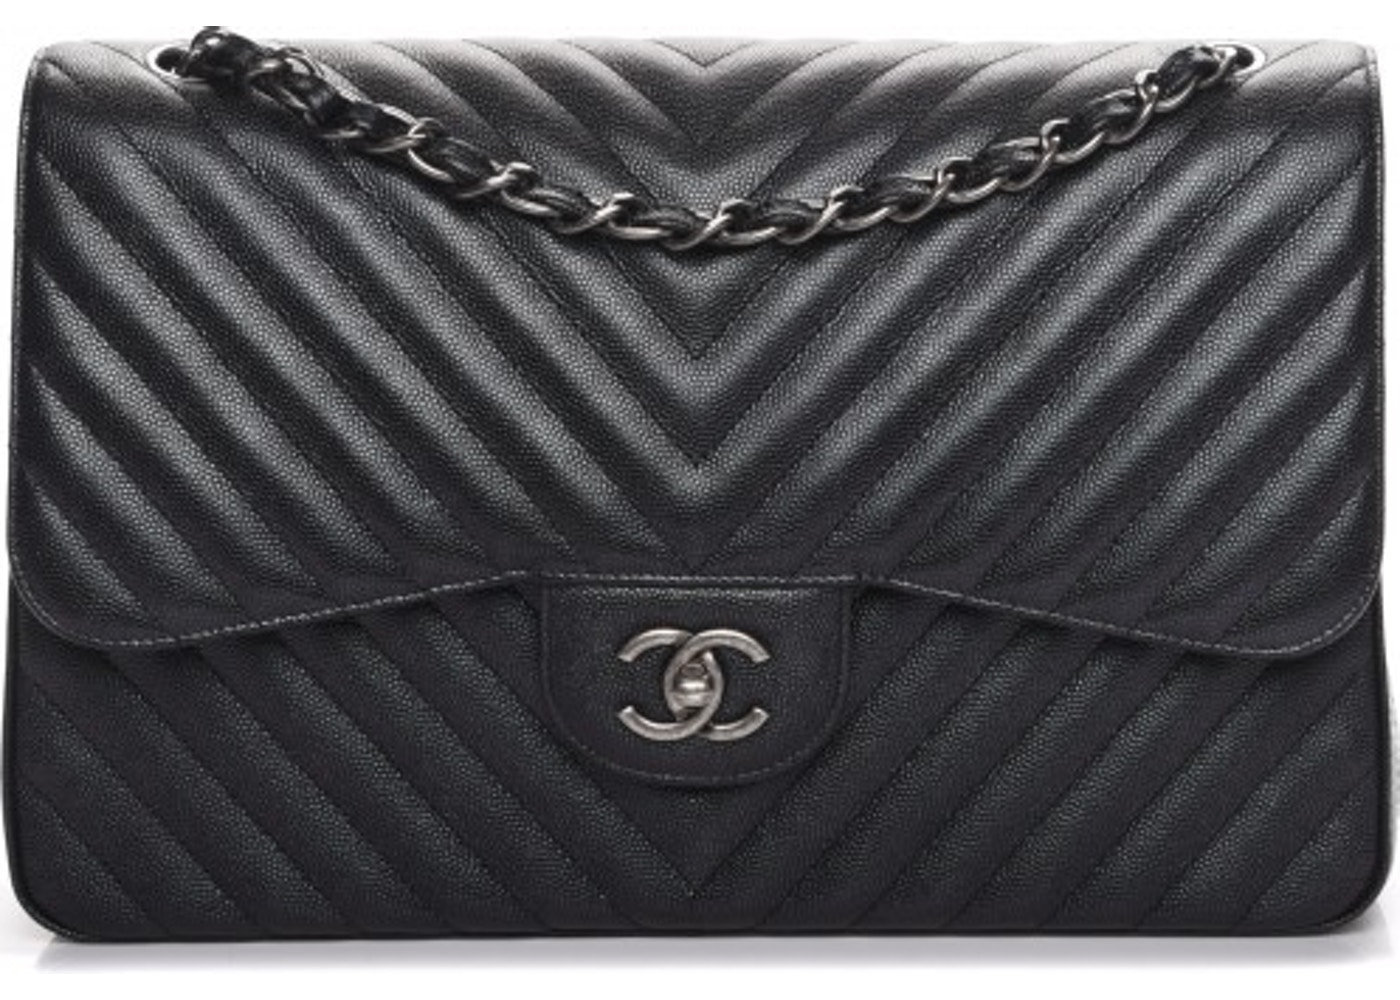 74c4f00587e3 Chanel Double Flap Chevron Quilted Metallic Jumbo Black. Chevron Quilted  Metallic Jumbo Black